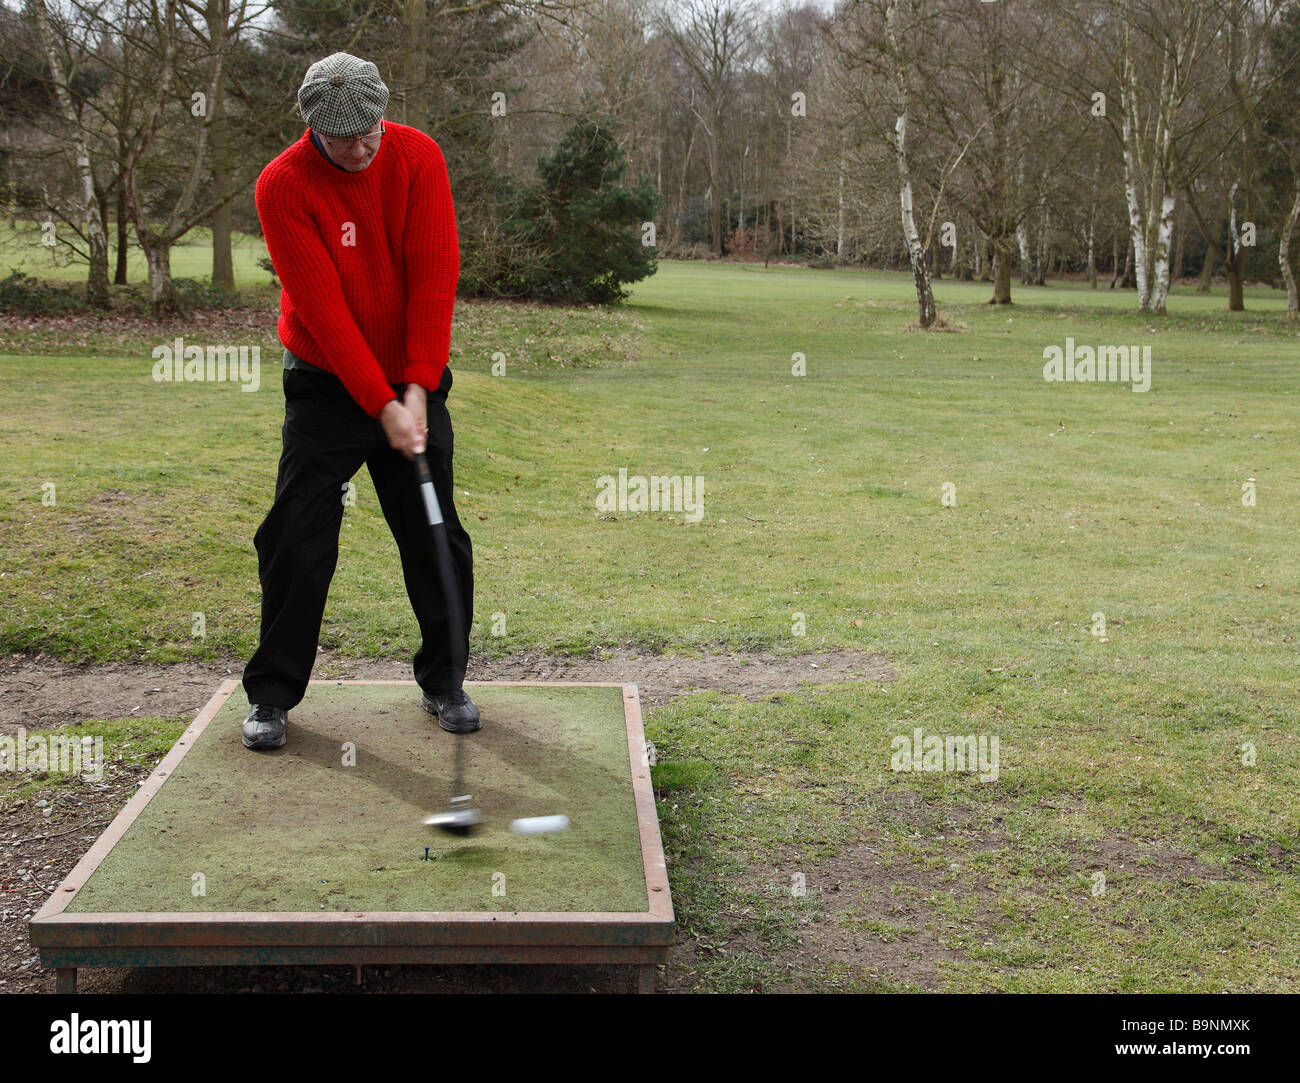 Golfer hitting a ball from a temporary tee. - Stock Image